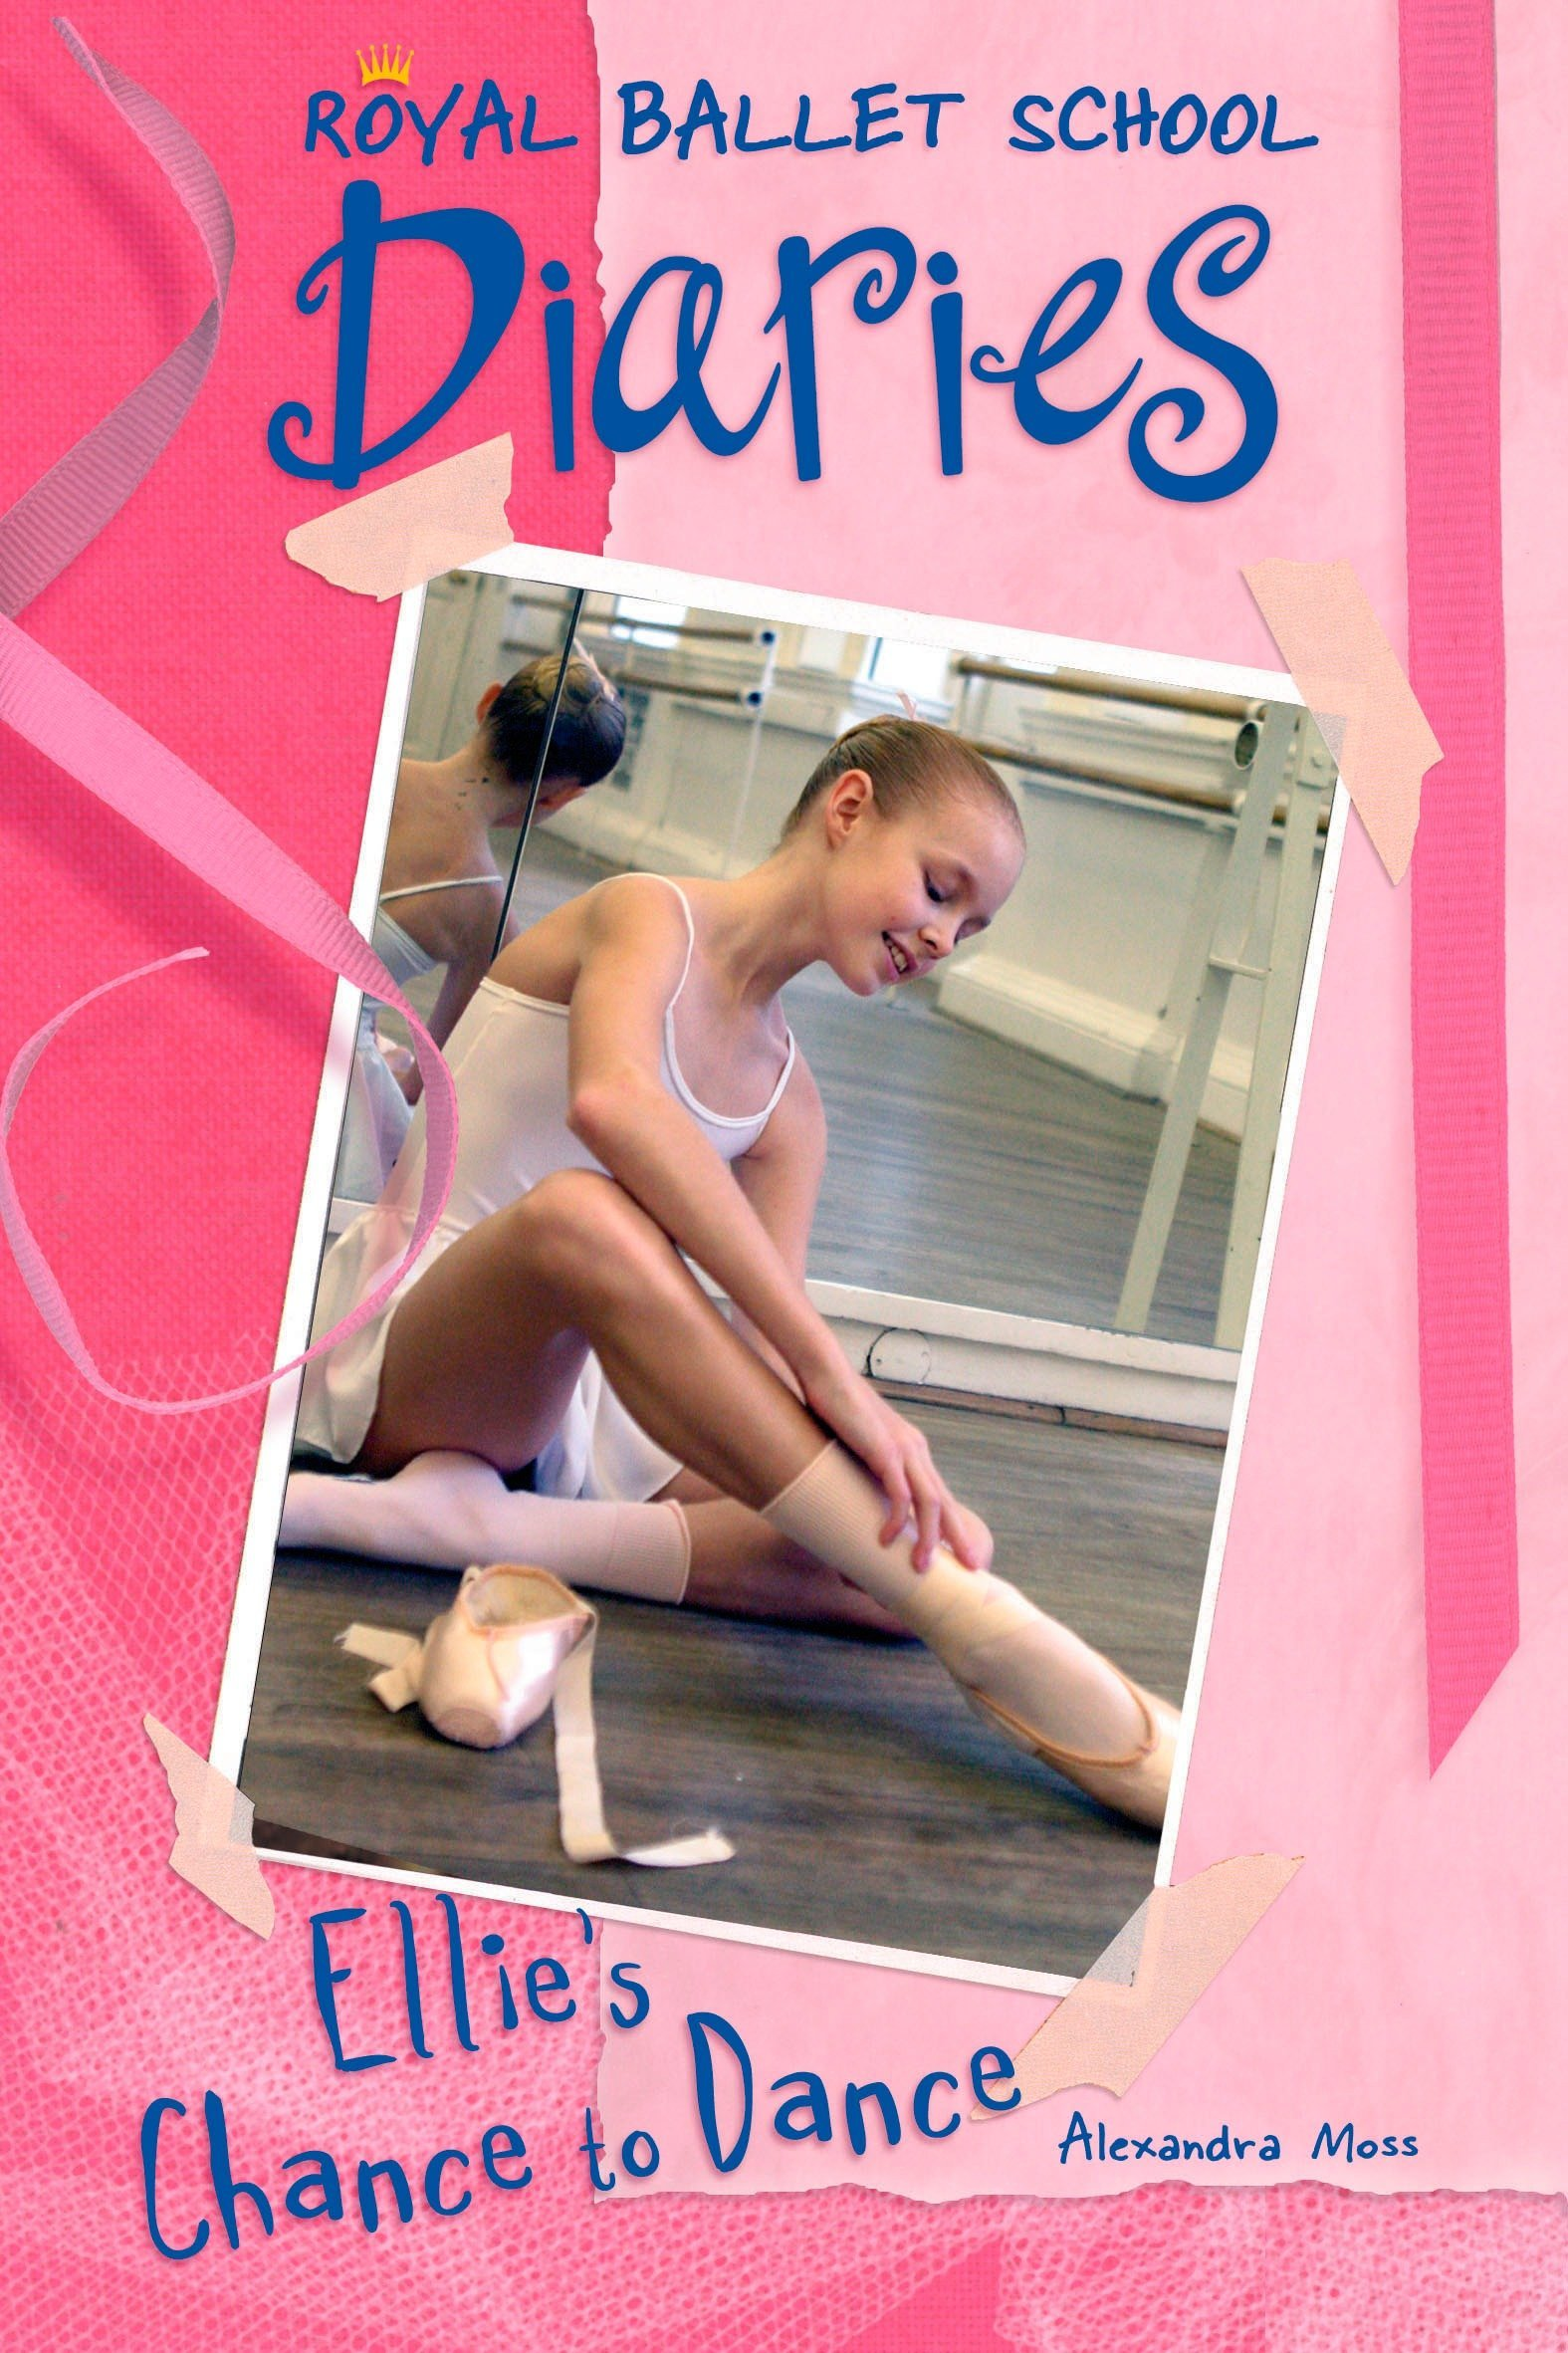 Ellie's Chance to Dance #1 (Royal Ballet School Diaries) Paperback – January 13, 2005 Alexandra Moss Grosset & Dunlap 0448435357 Performing Arts - General